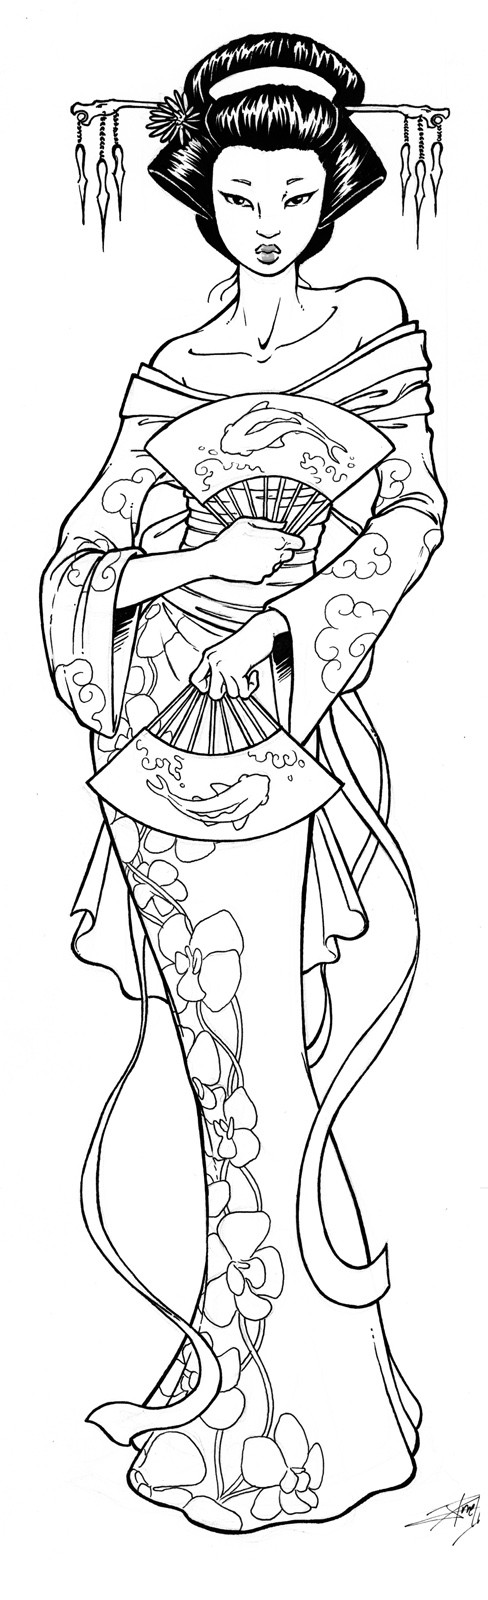 1000 Images About Geisha Tattoo On Pinterest Geisha Geisha Coloring Pages